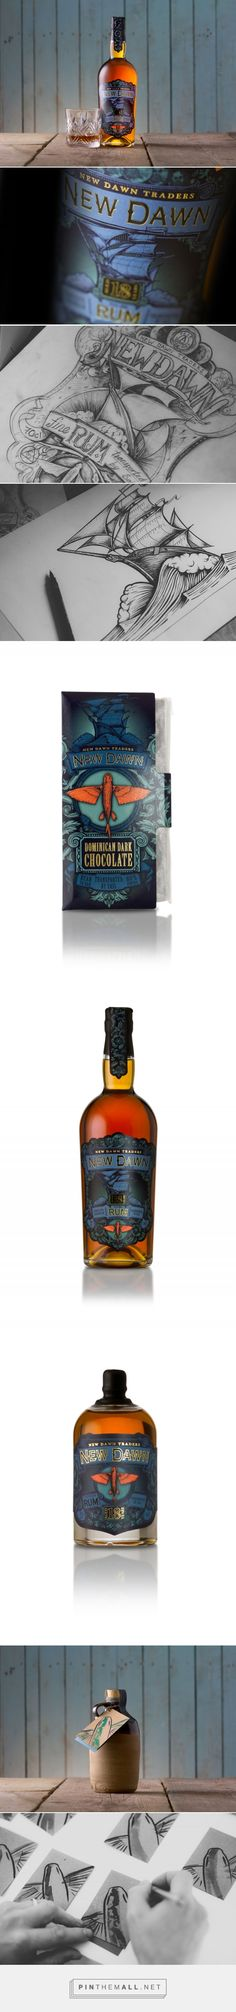 New Dawn Traders Rum | Rum label design, Illustration... - a grouped images picture - Pin Them All